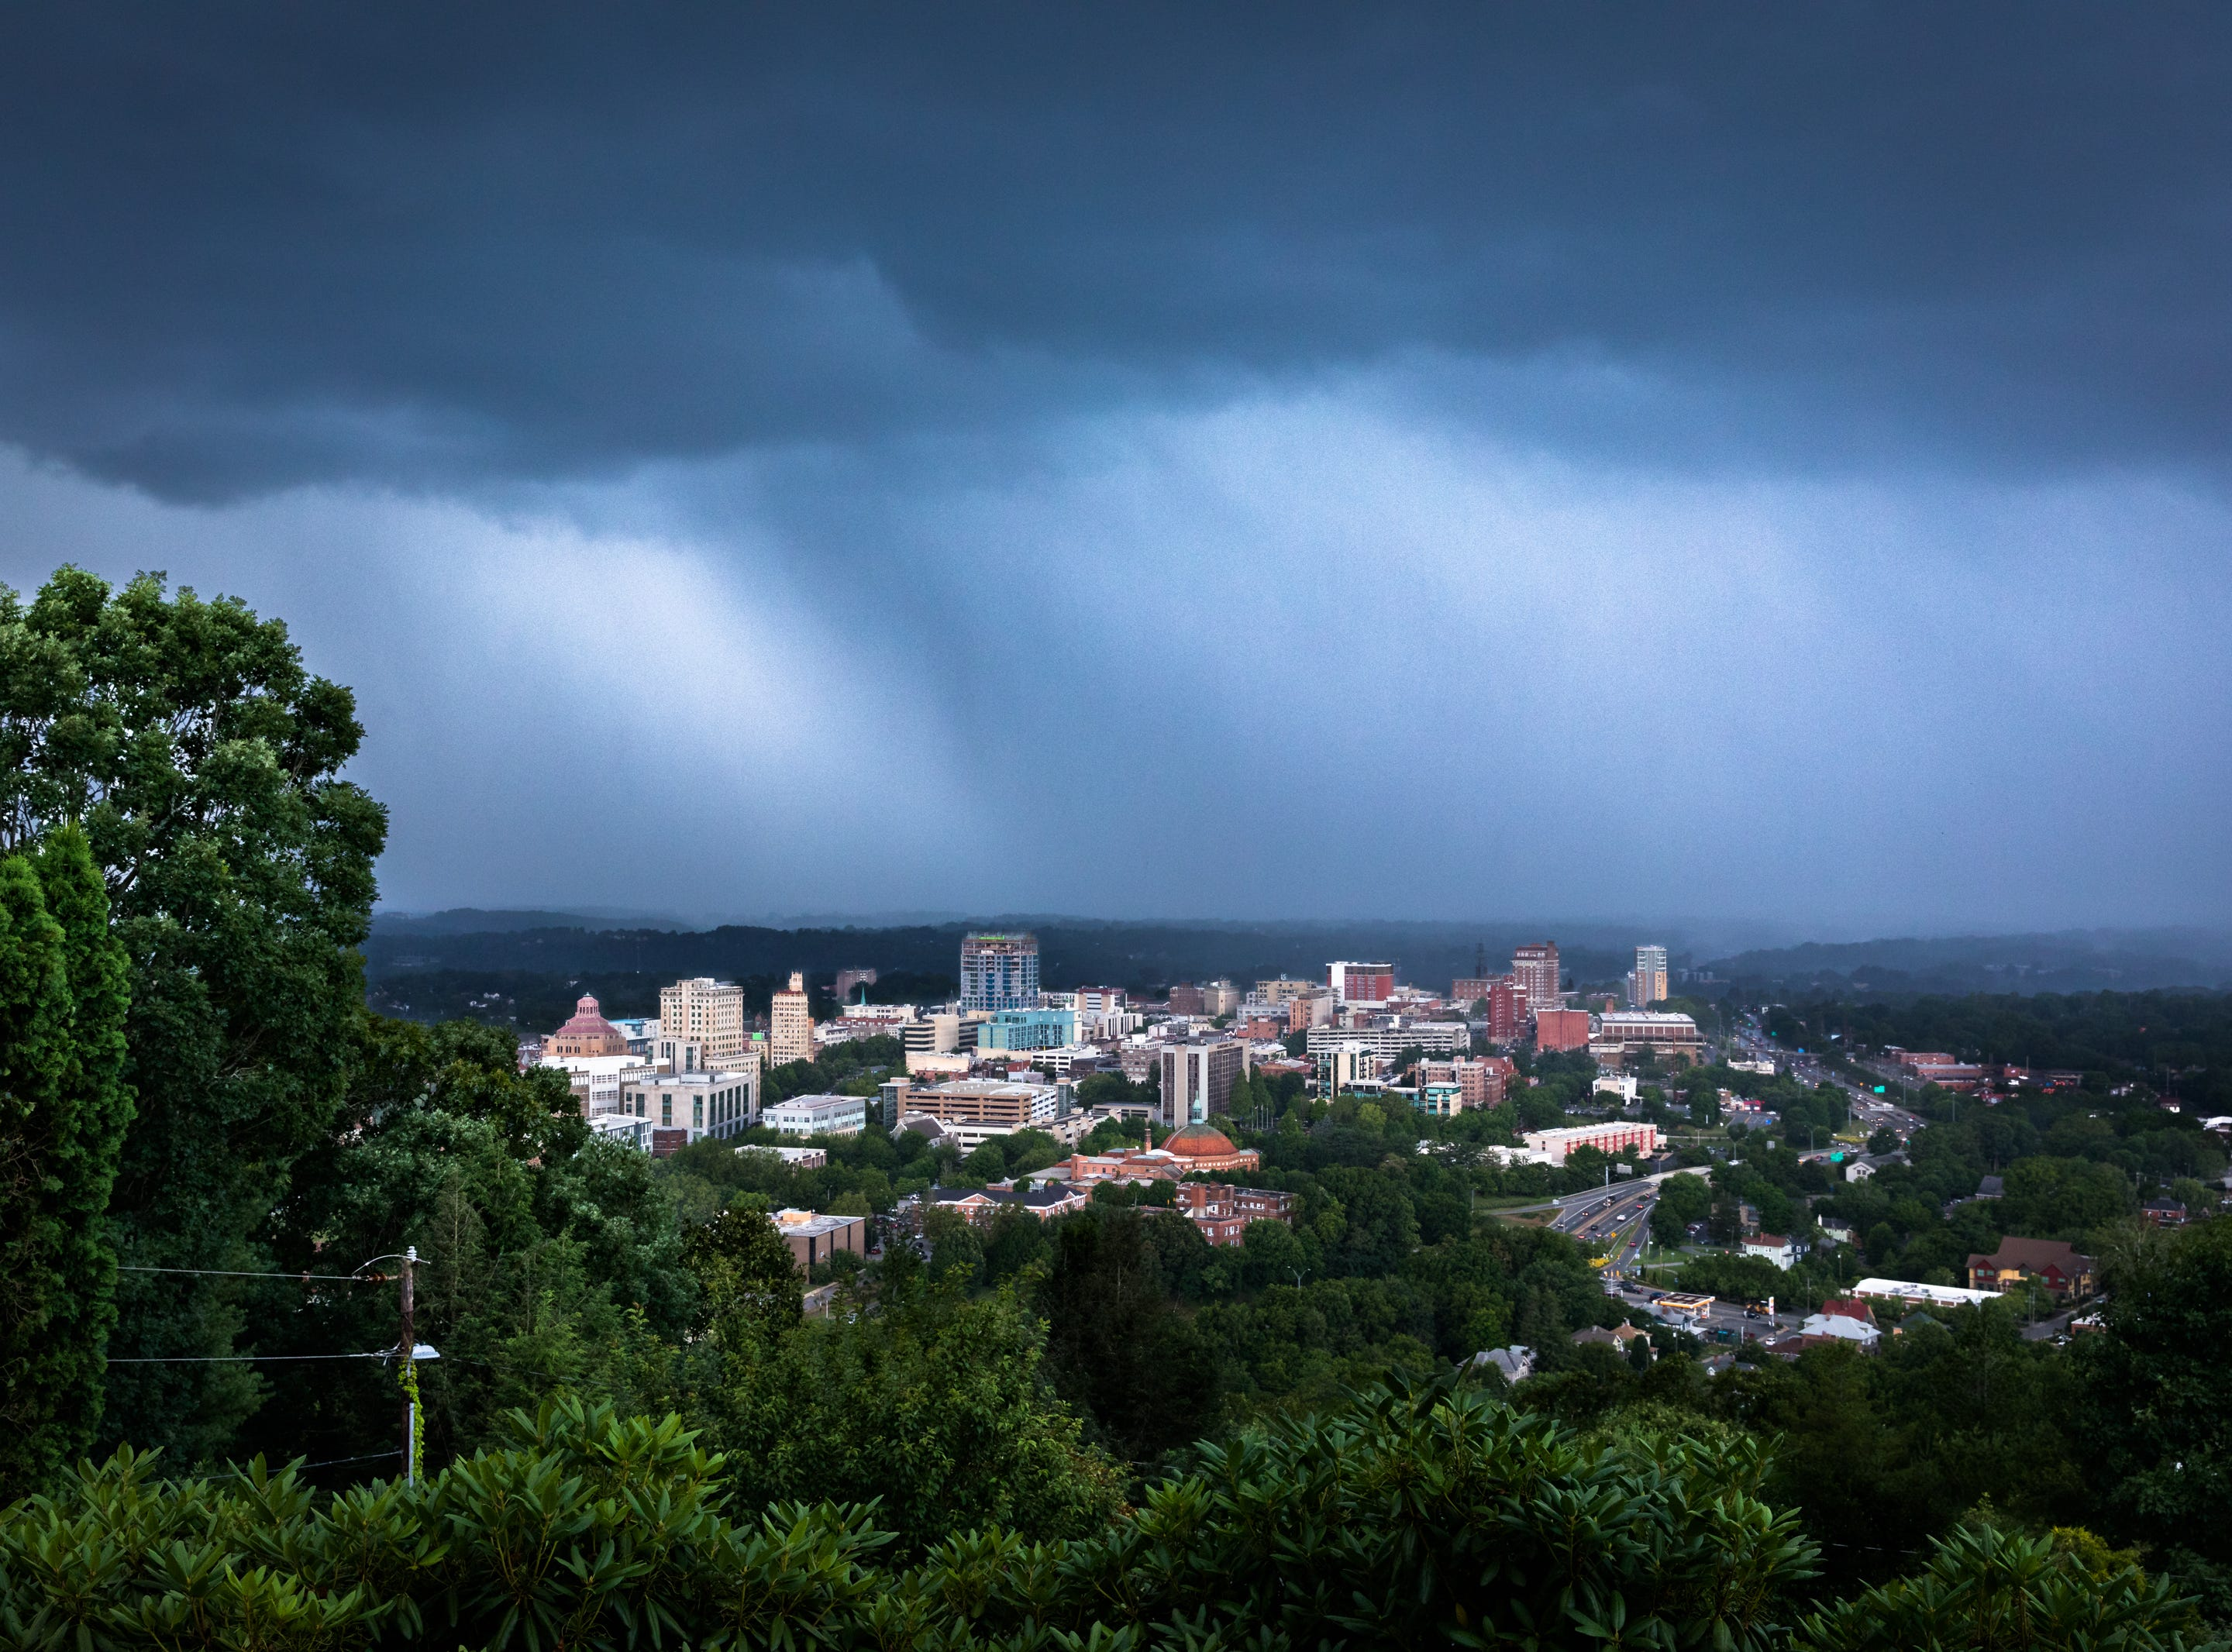 Heavy rain moves in over downtown Asheville as seen from Town Mountain Road Jun. 26, 2018.